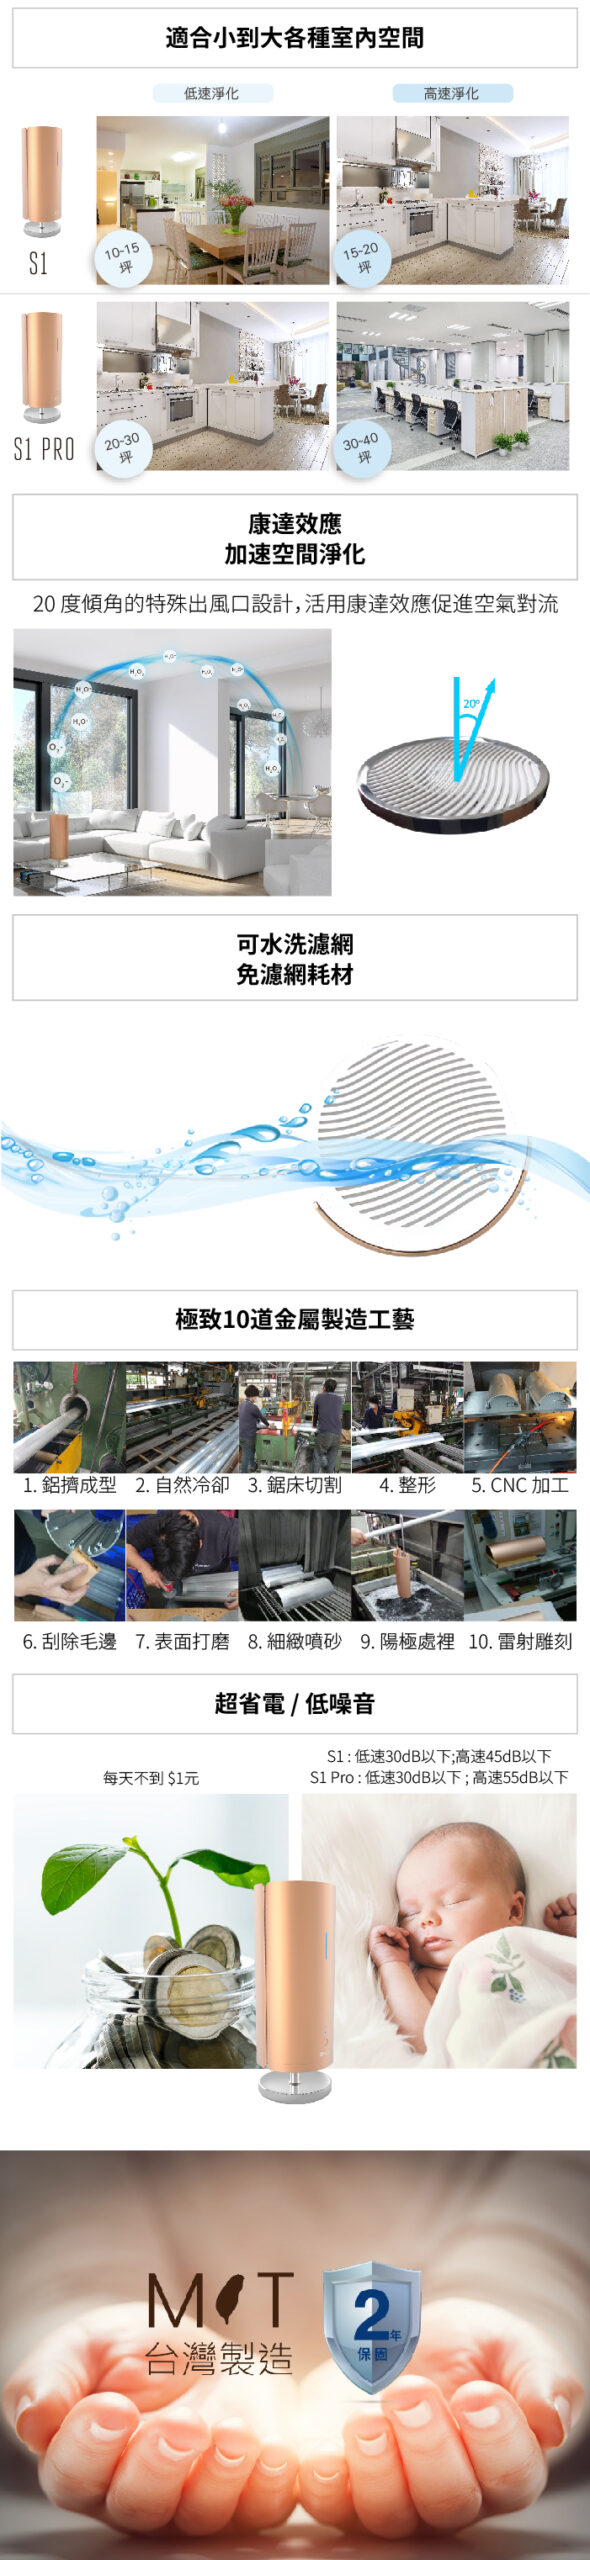 BRISE S1 全效環境抑菌除味機 - S1 features image tw 03 scaled